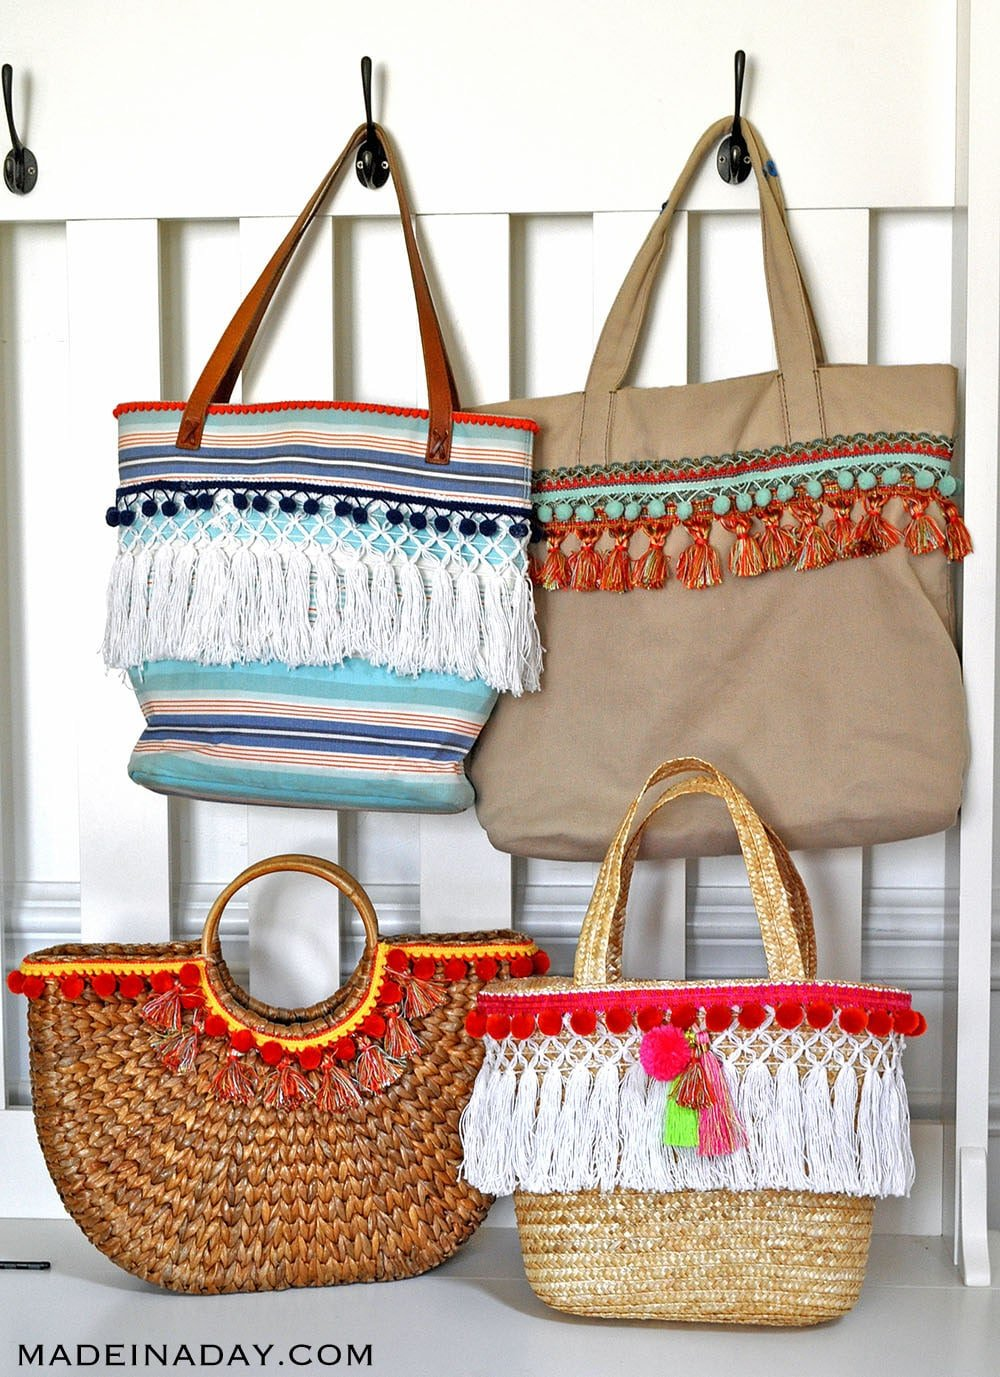 diy beach bags, cute beach totes, trendy totes, add tassel trim totes